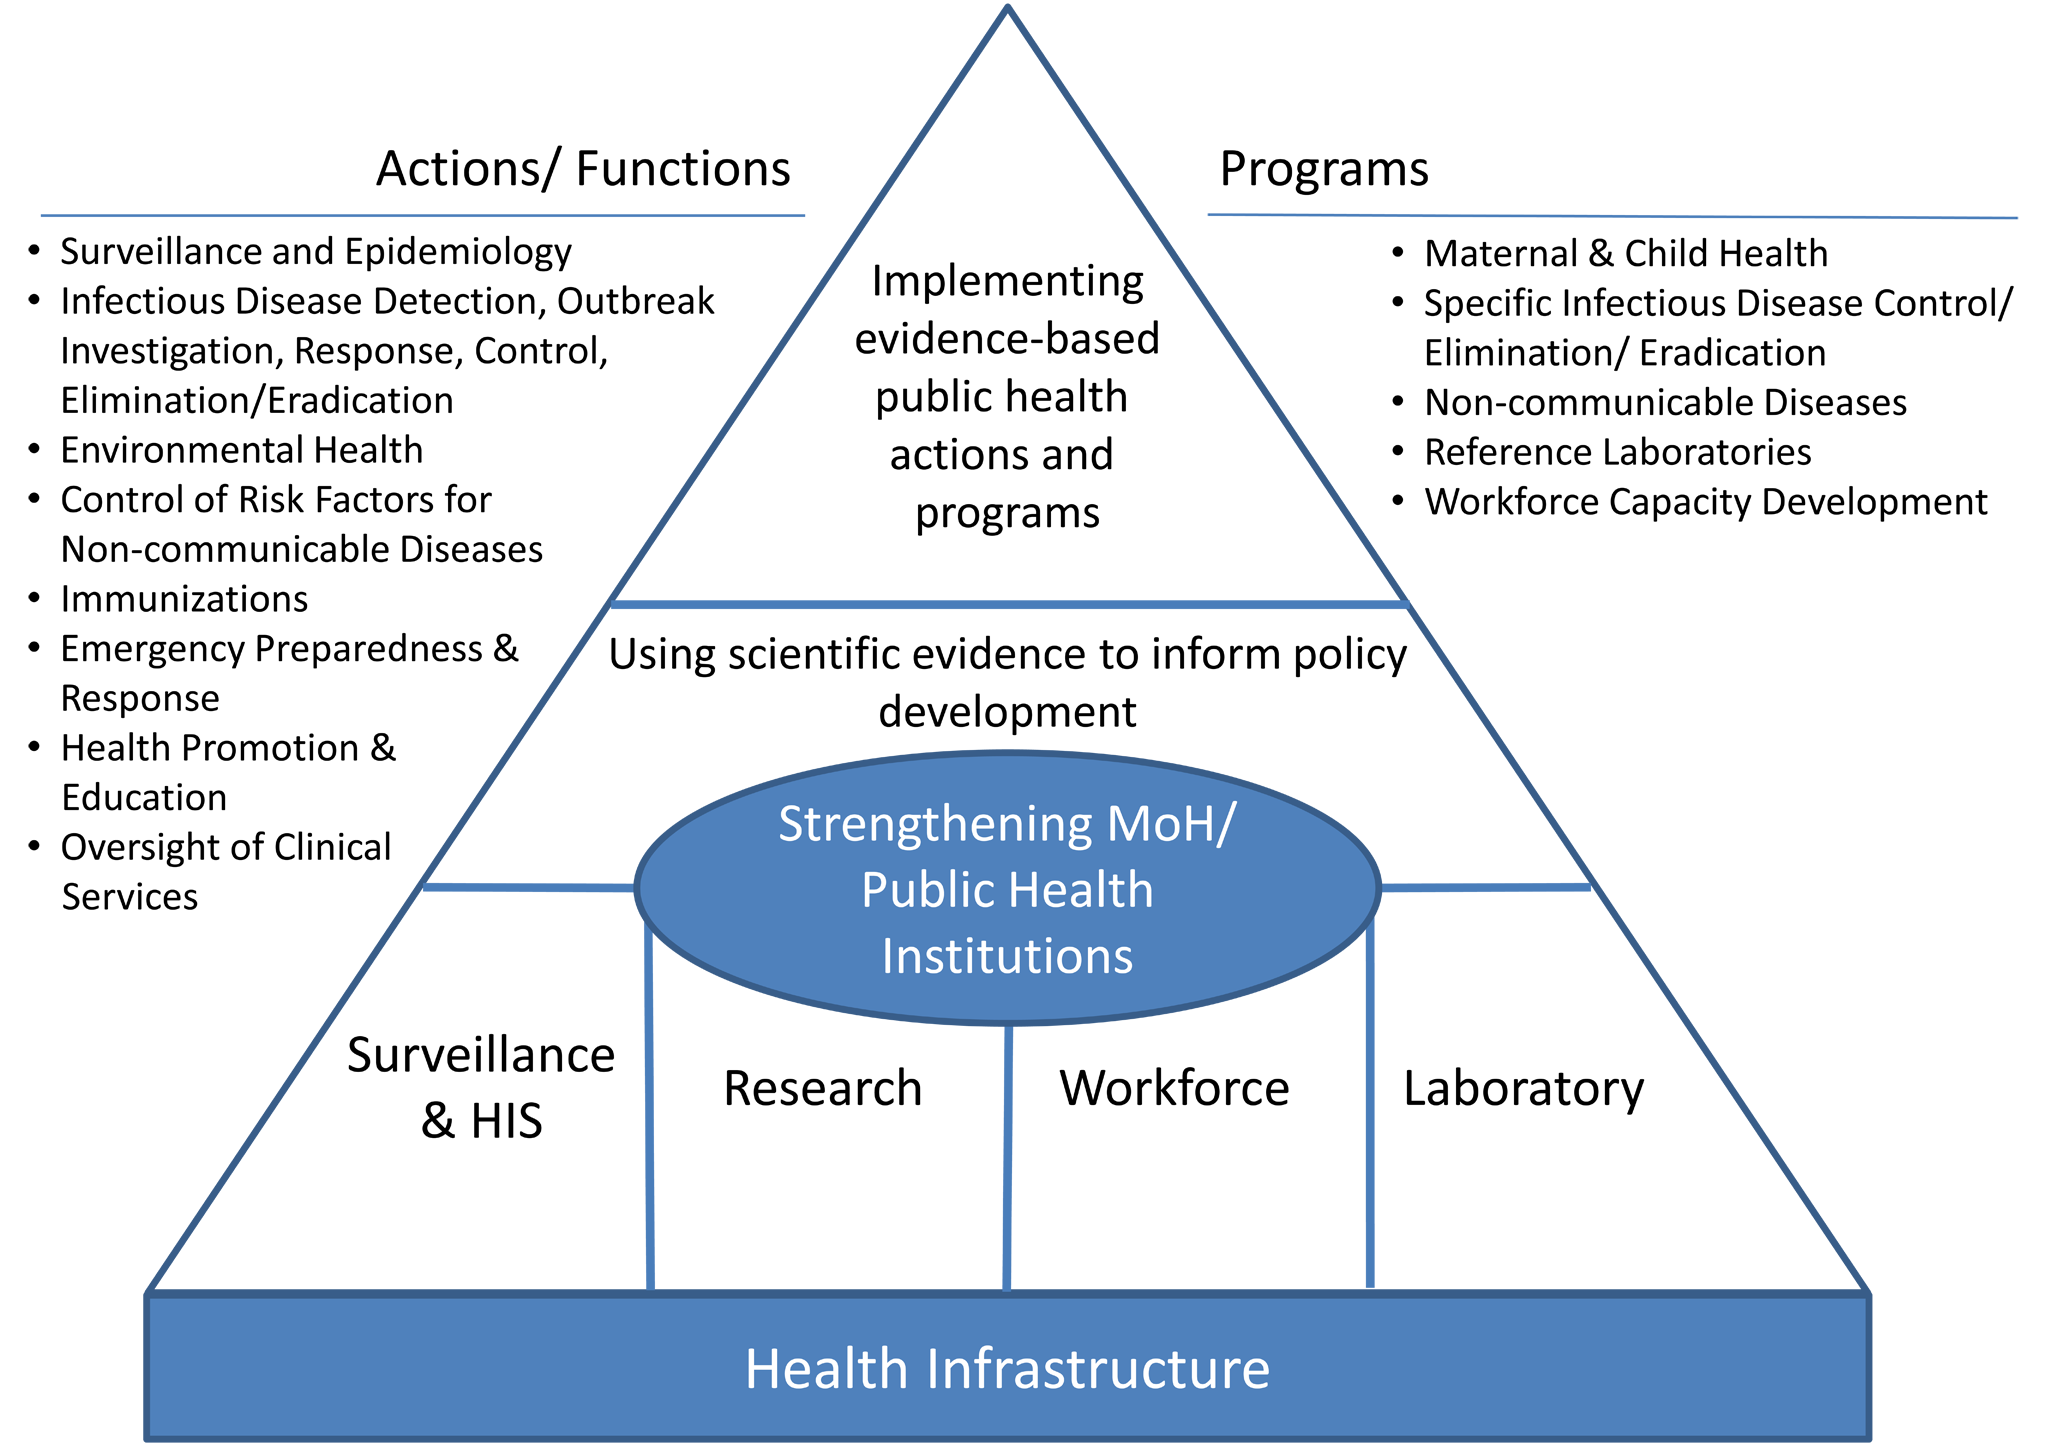 Public health framework for health systems strengthening.